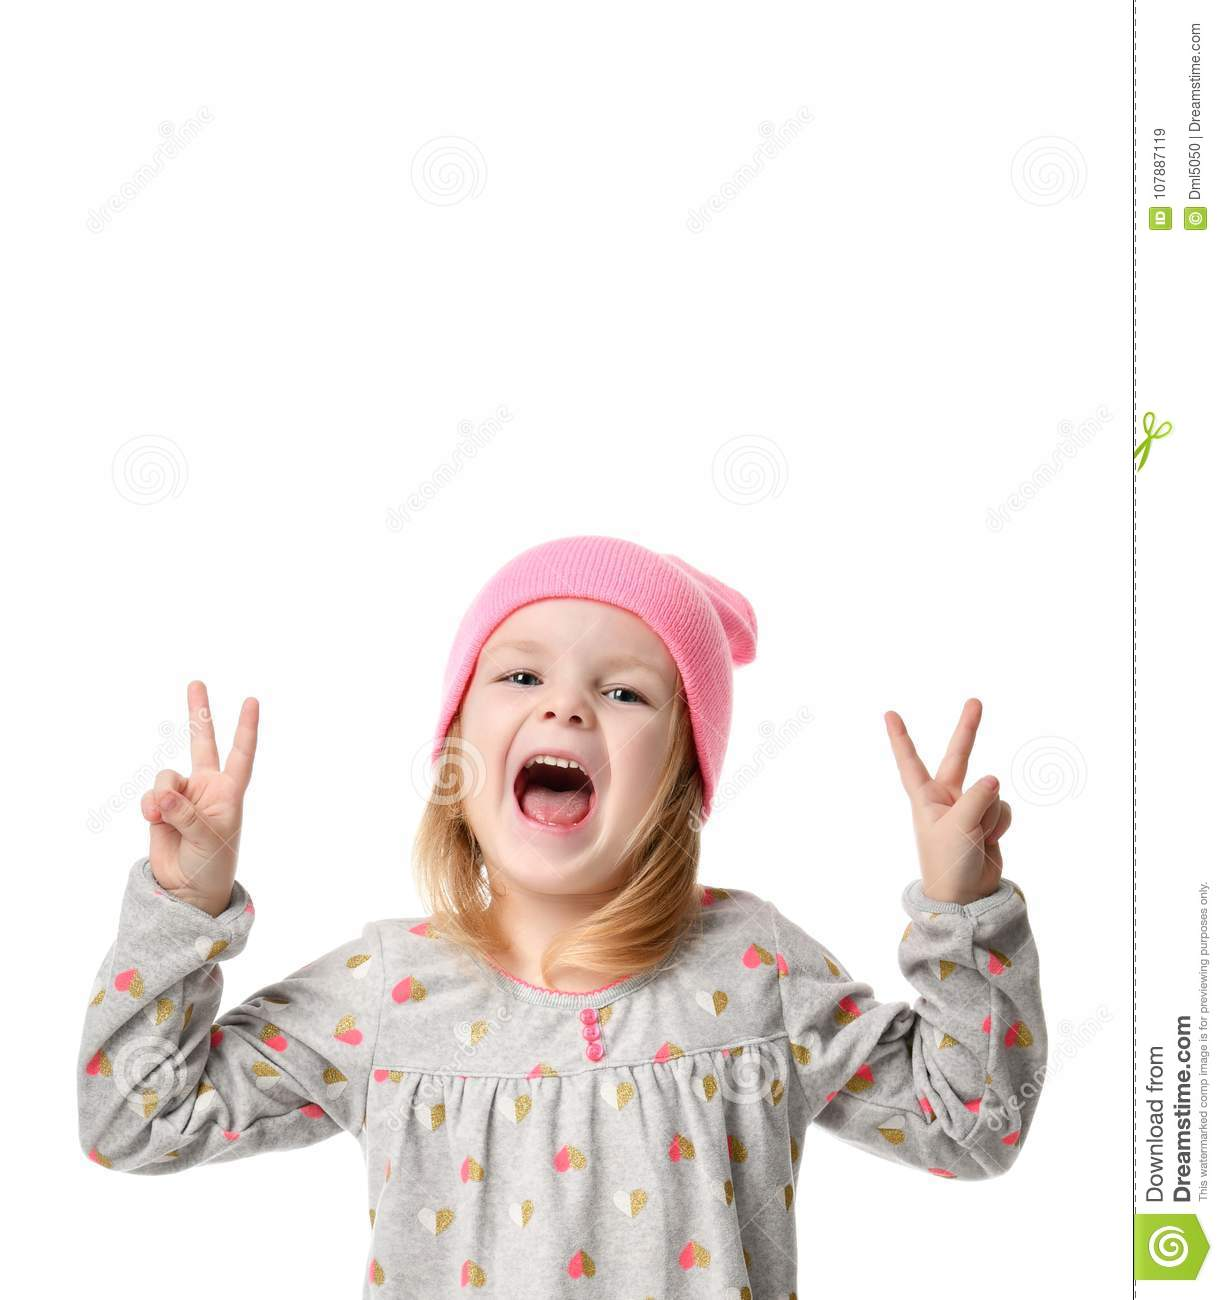 Young blond girl in birthday party princess hat hands show peace sign screaming